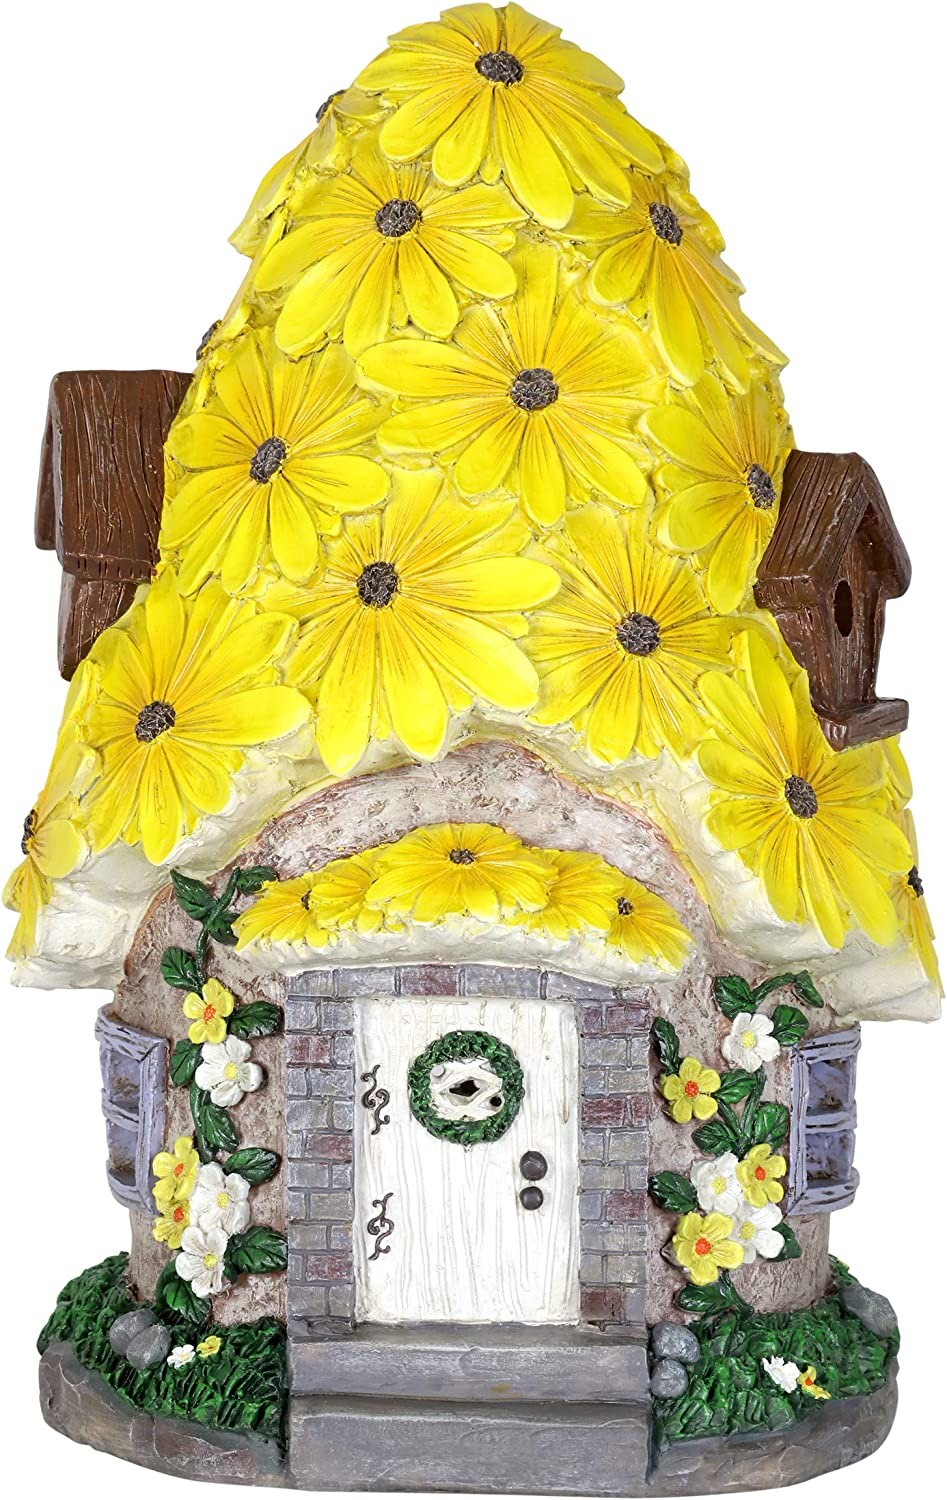 Exhart LED Planter Sunflowers Battery Operated with Timer